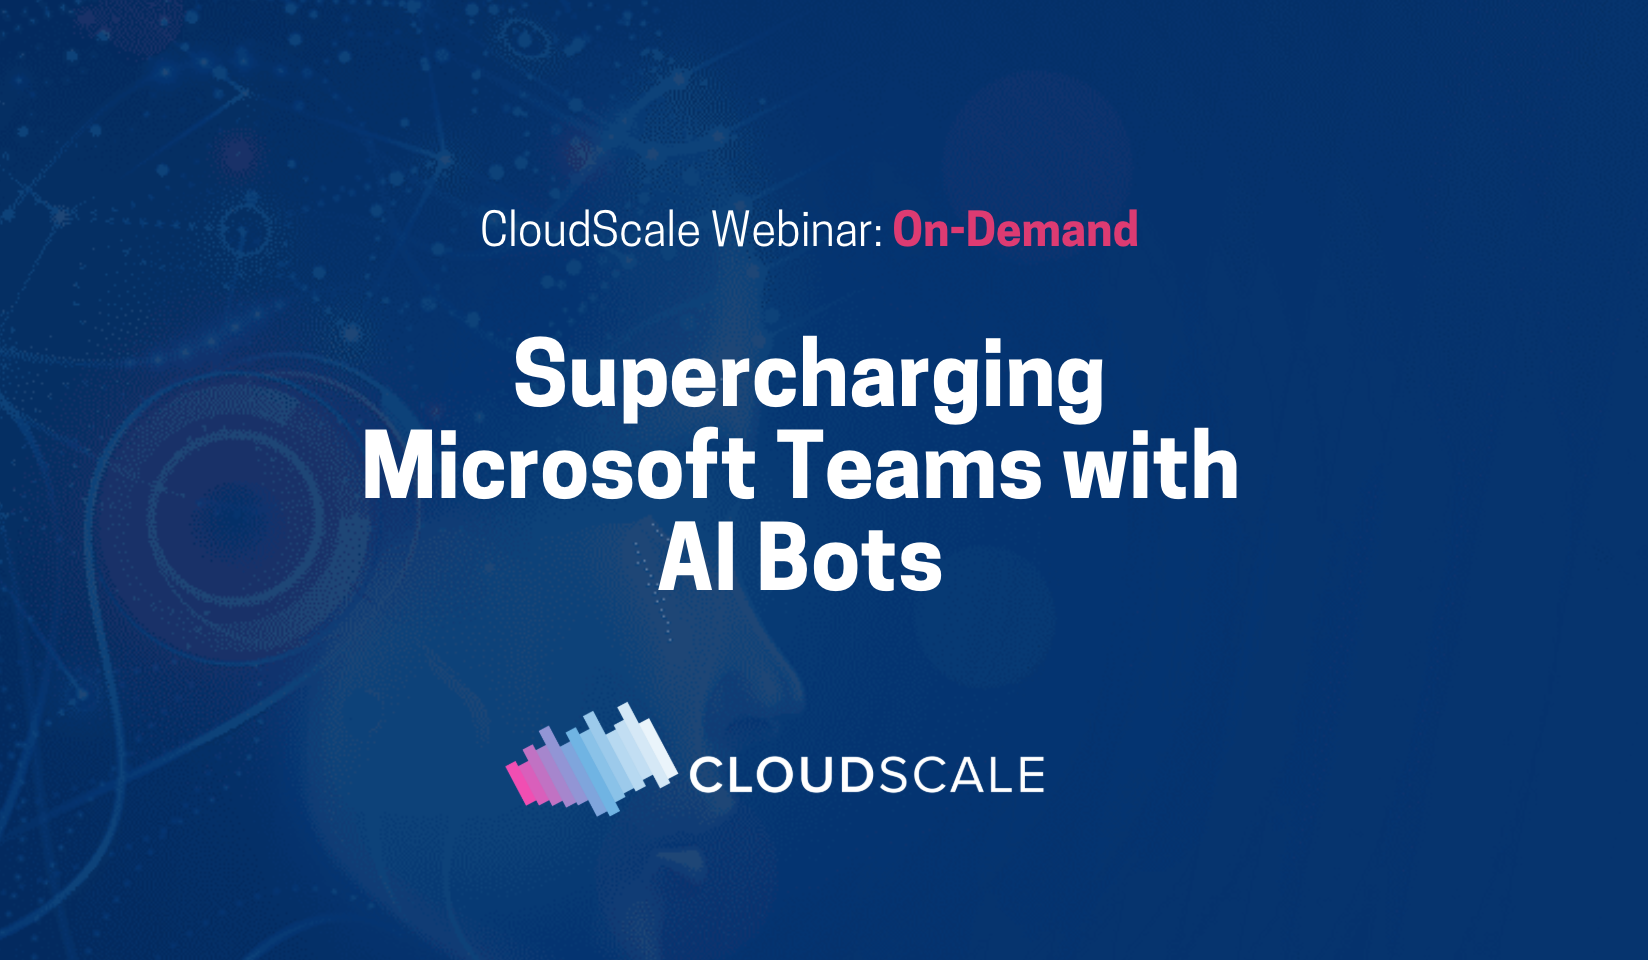 Supercharging Microsoft Teams with AI Bots Video